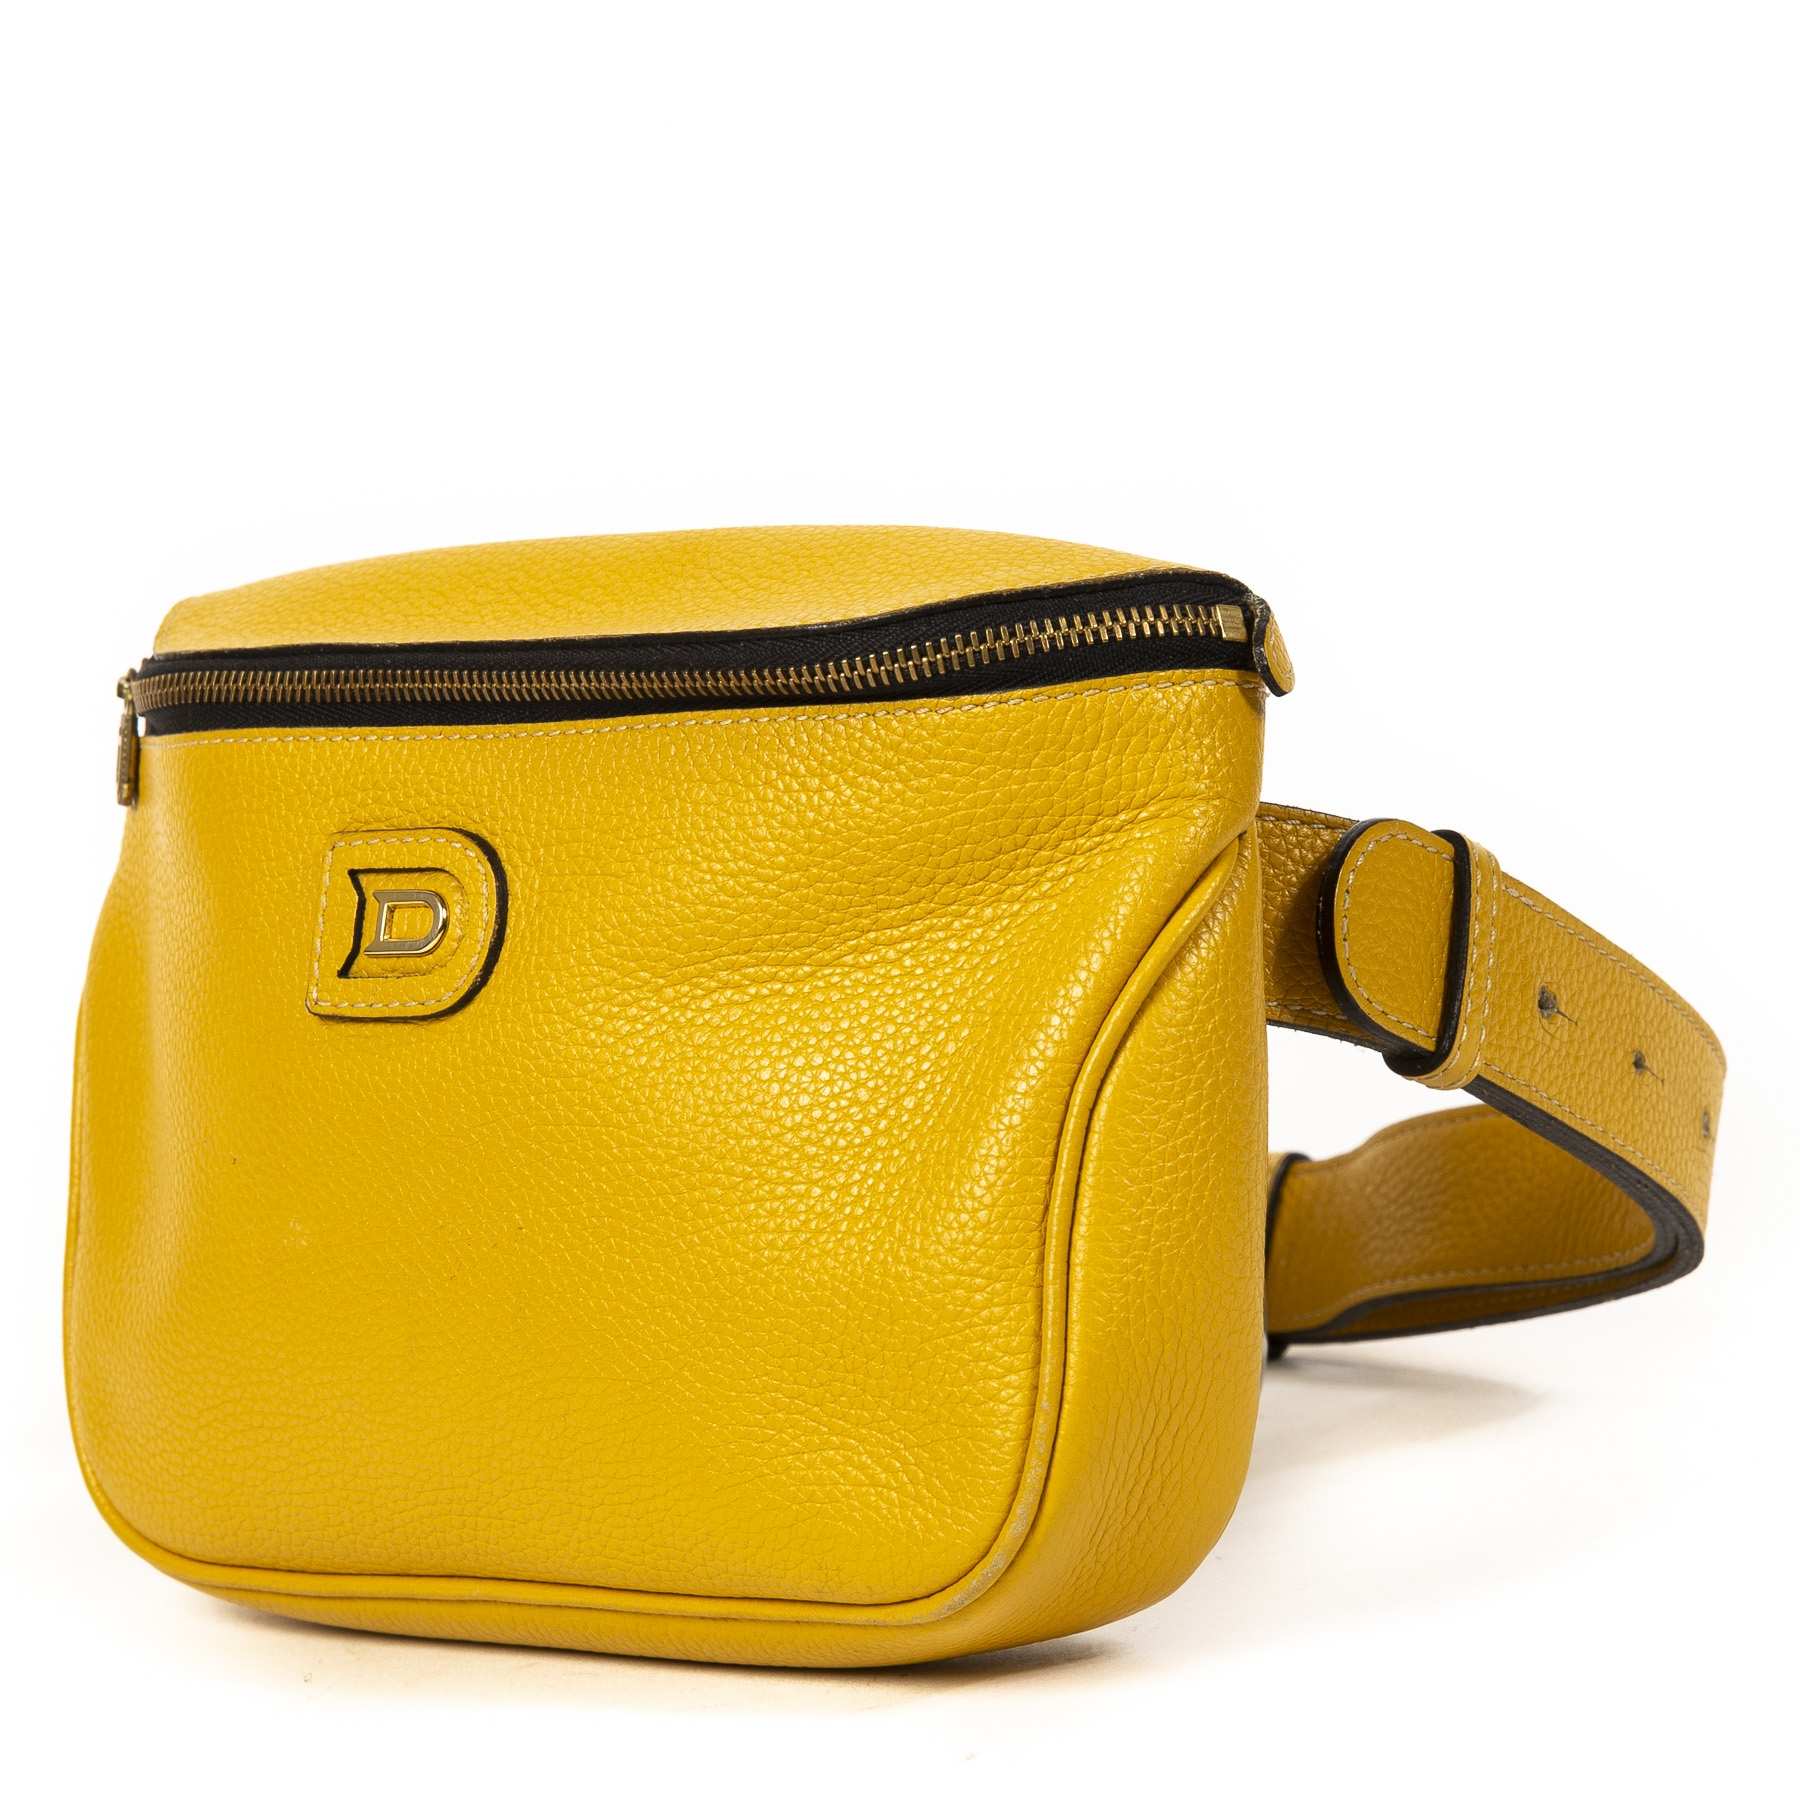 shop safe online Delvaux Mustard Yellow Belt Bag